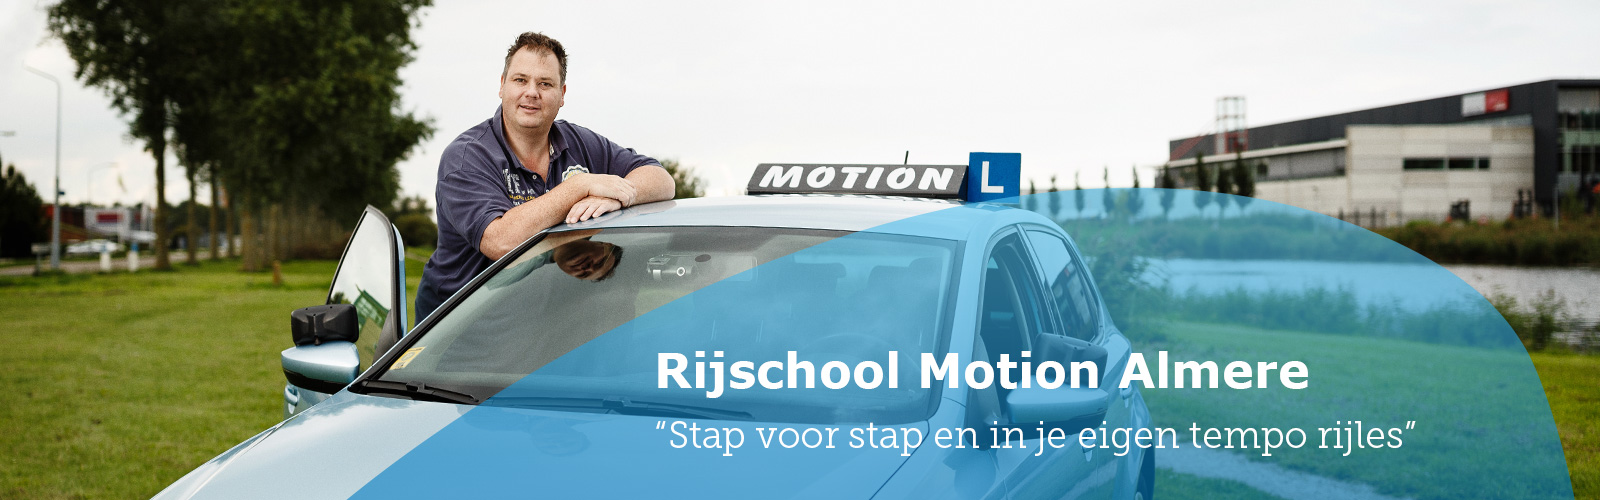 Over Rijschool Motion Almere